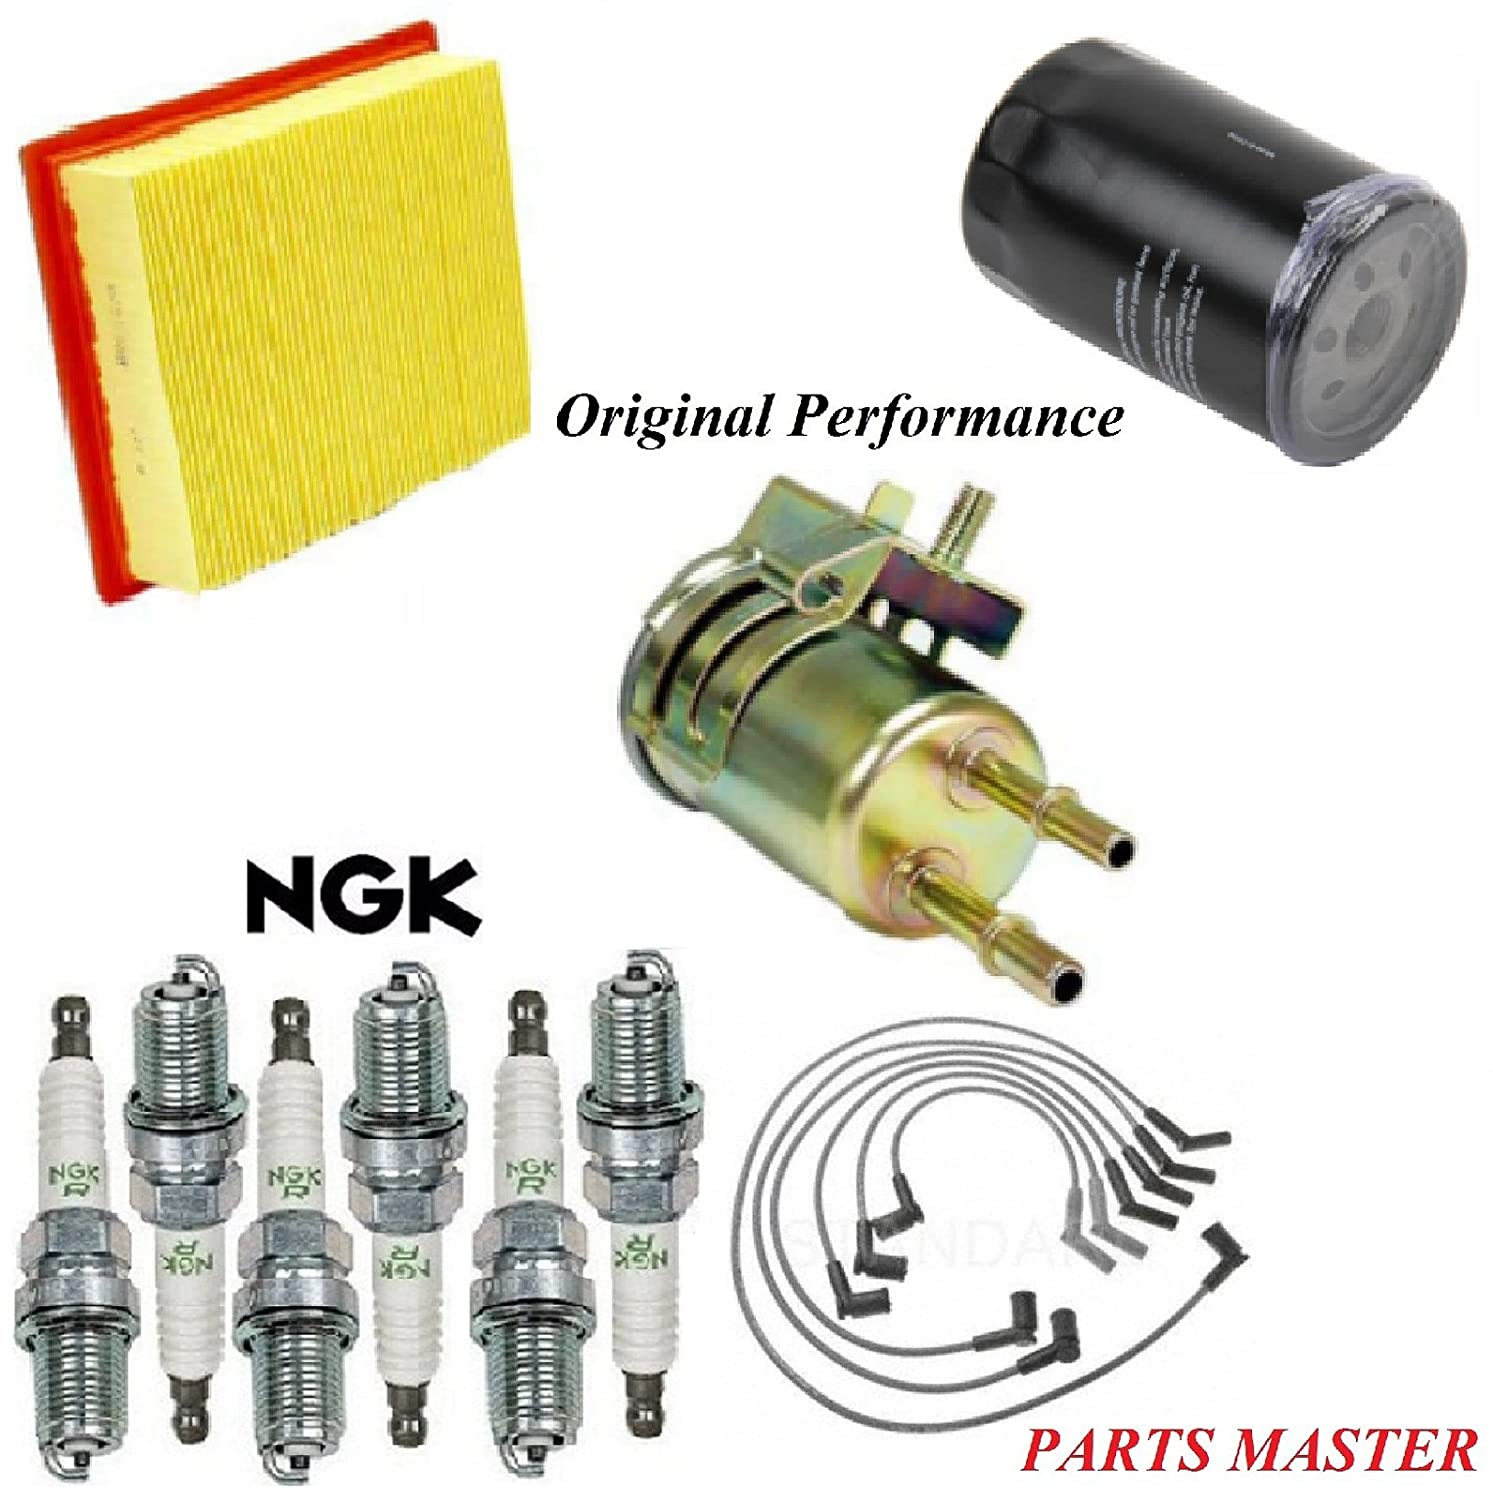 8USAUTO Tune Up Kit Air Oil Fuel Filters Wire Spark Plug Fit FORD RANGER V6 3.0L 2001-2002